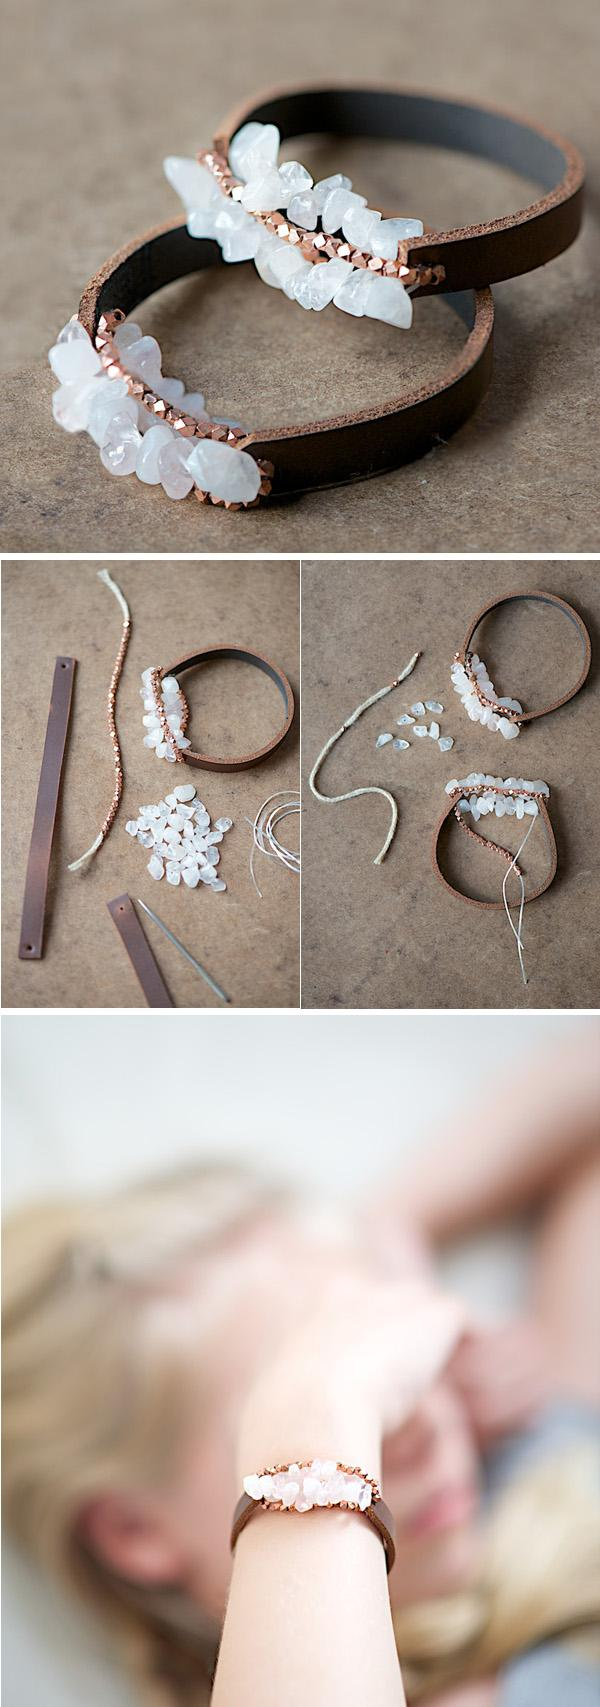 Easy Chunky Leather Bracelet Tutorial-16